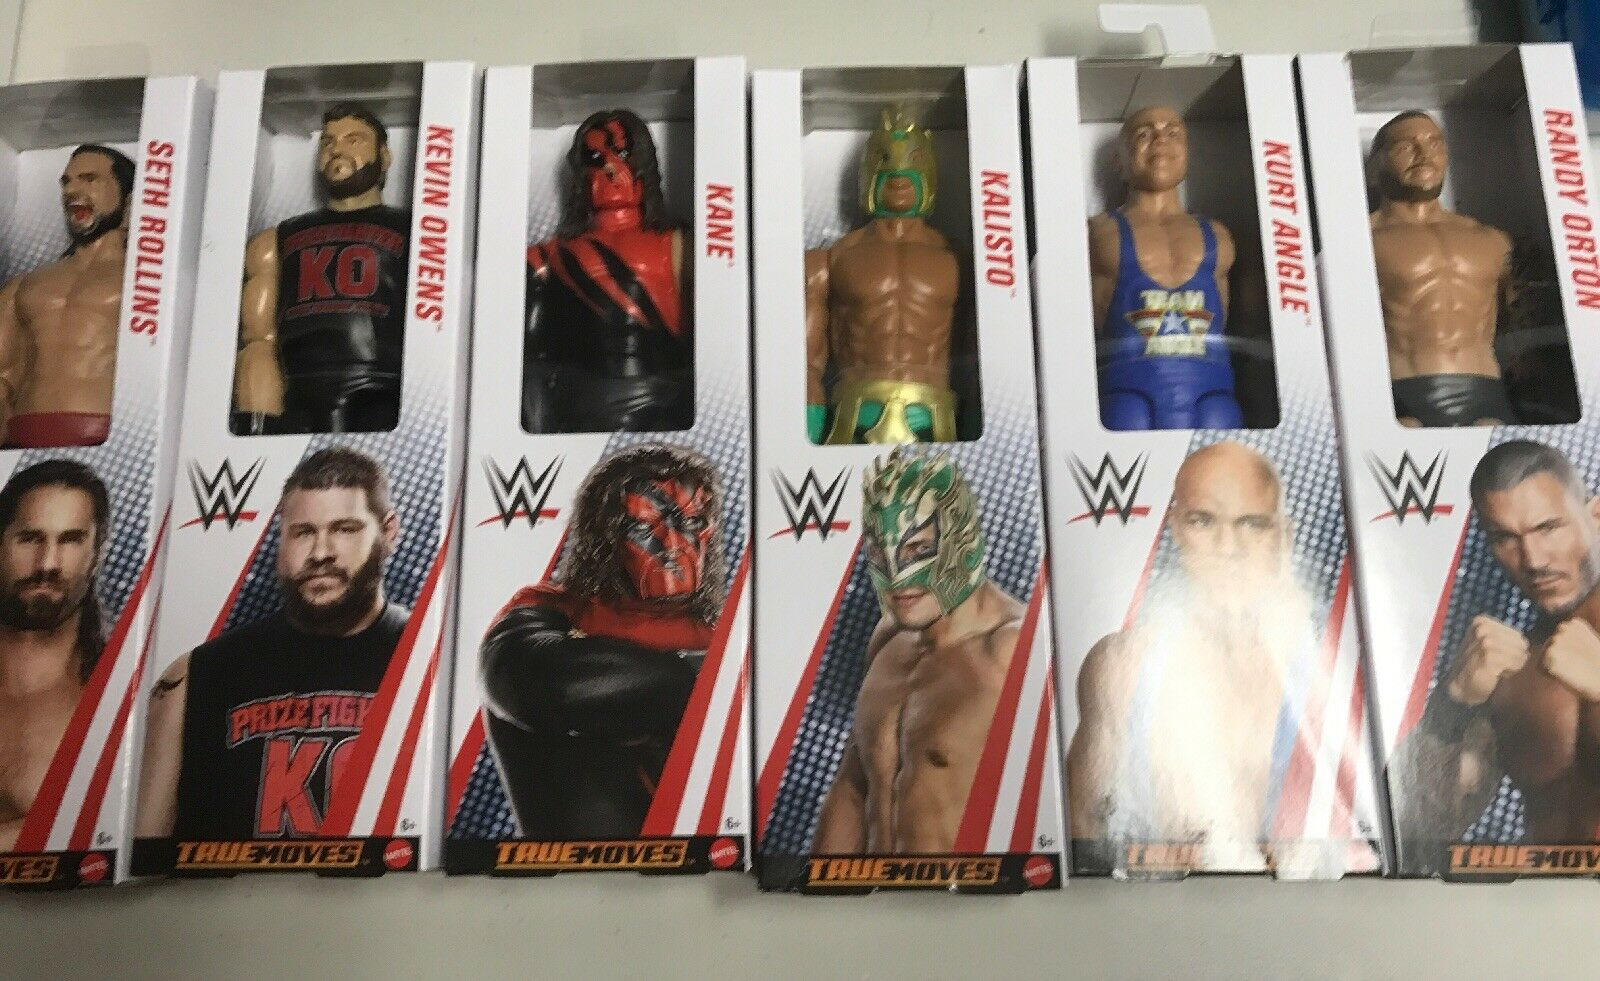 WWE Mattel True Moves New Figs Figs Figs 2019 Hot Rollins Owens Angle Orton & More   Lot 51a